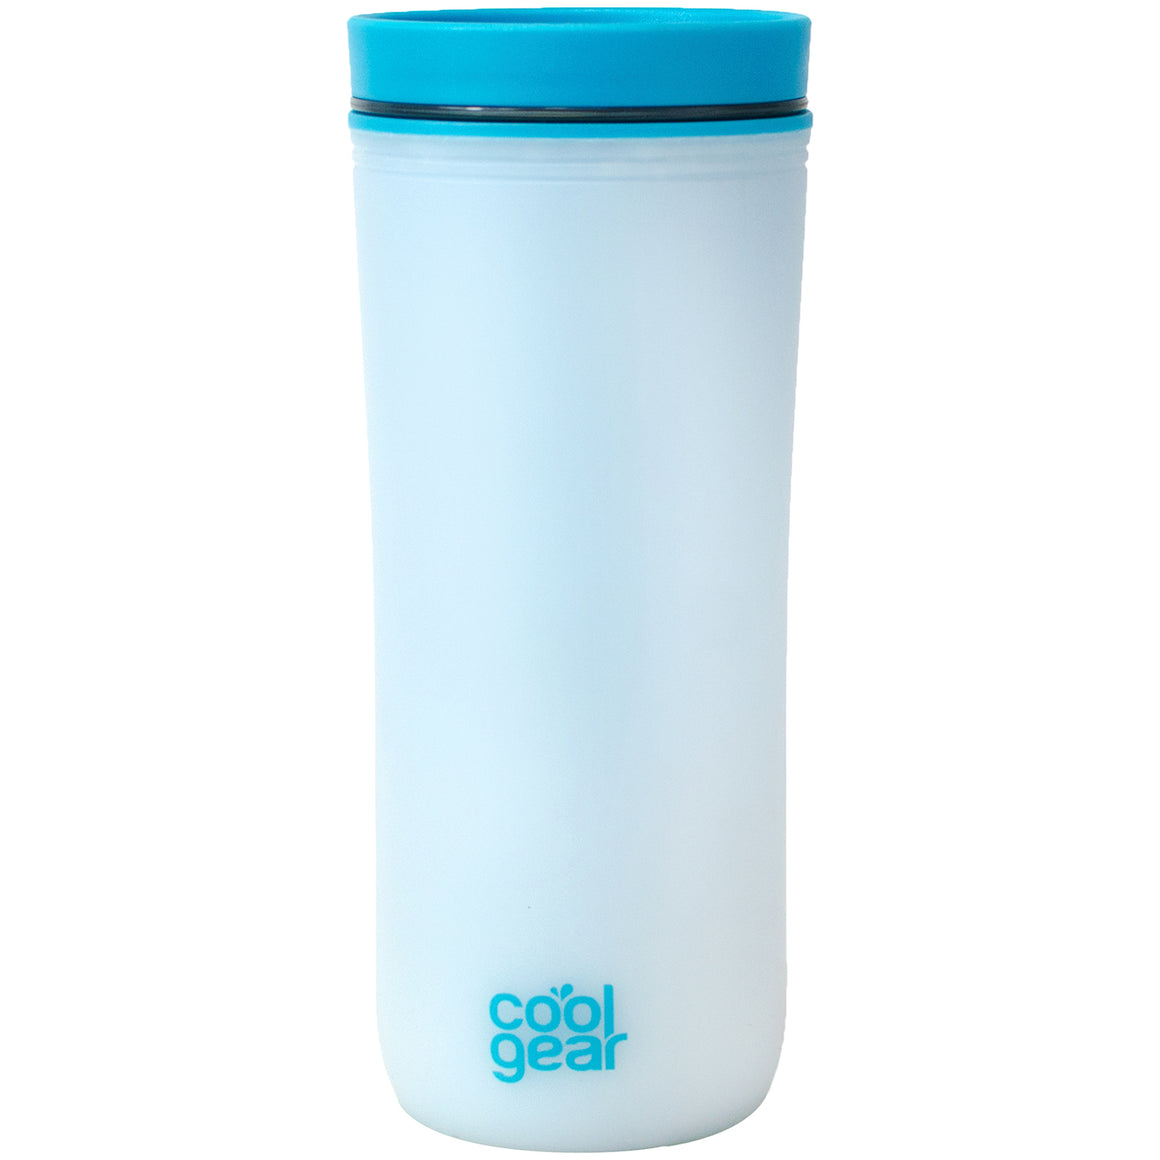 Bright Green Sumatra 16 Oz Travel Mug at Cool Gear Coffee Tea,Travel Mugs